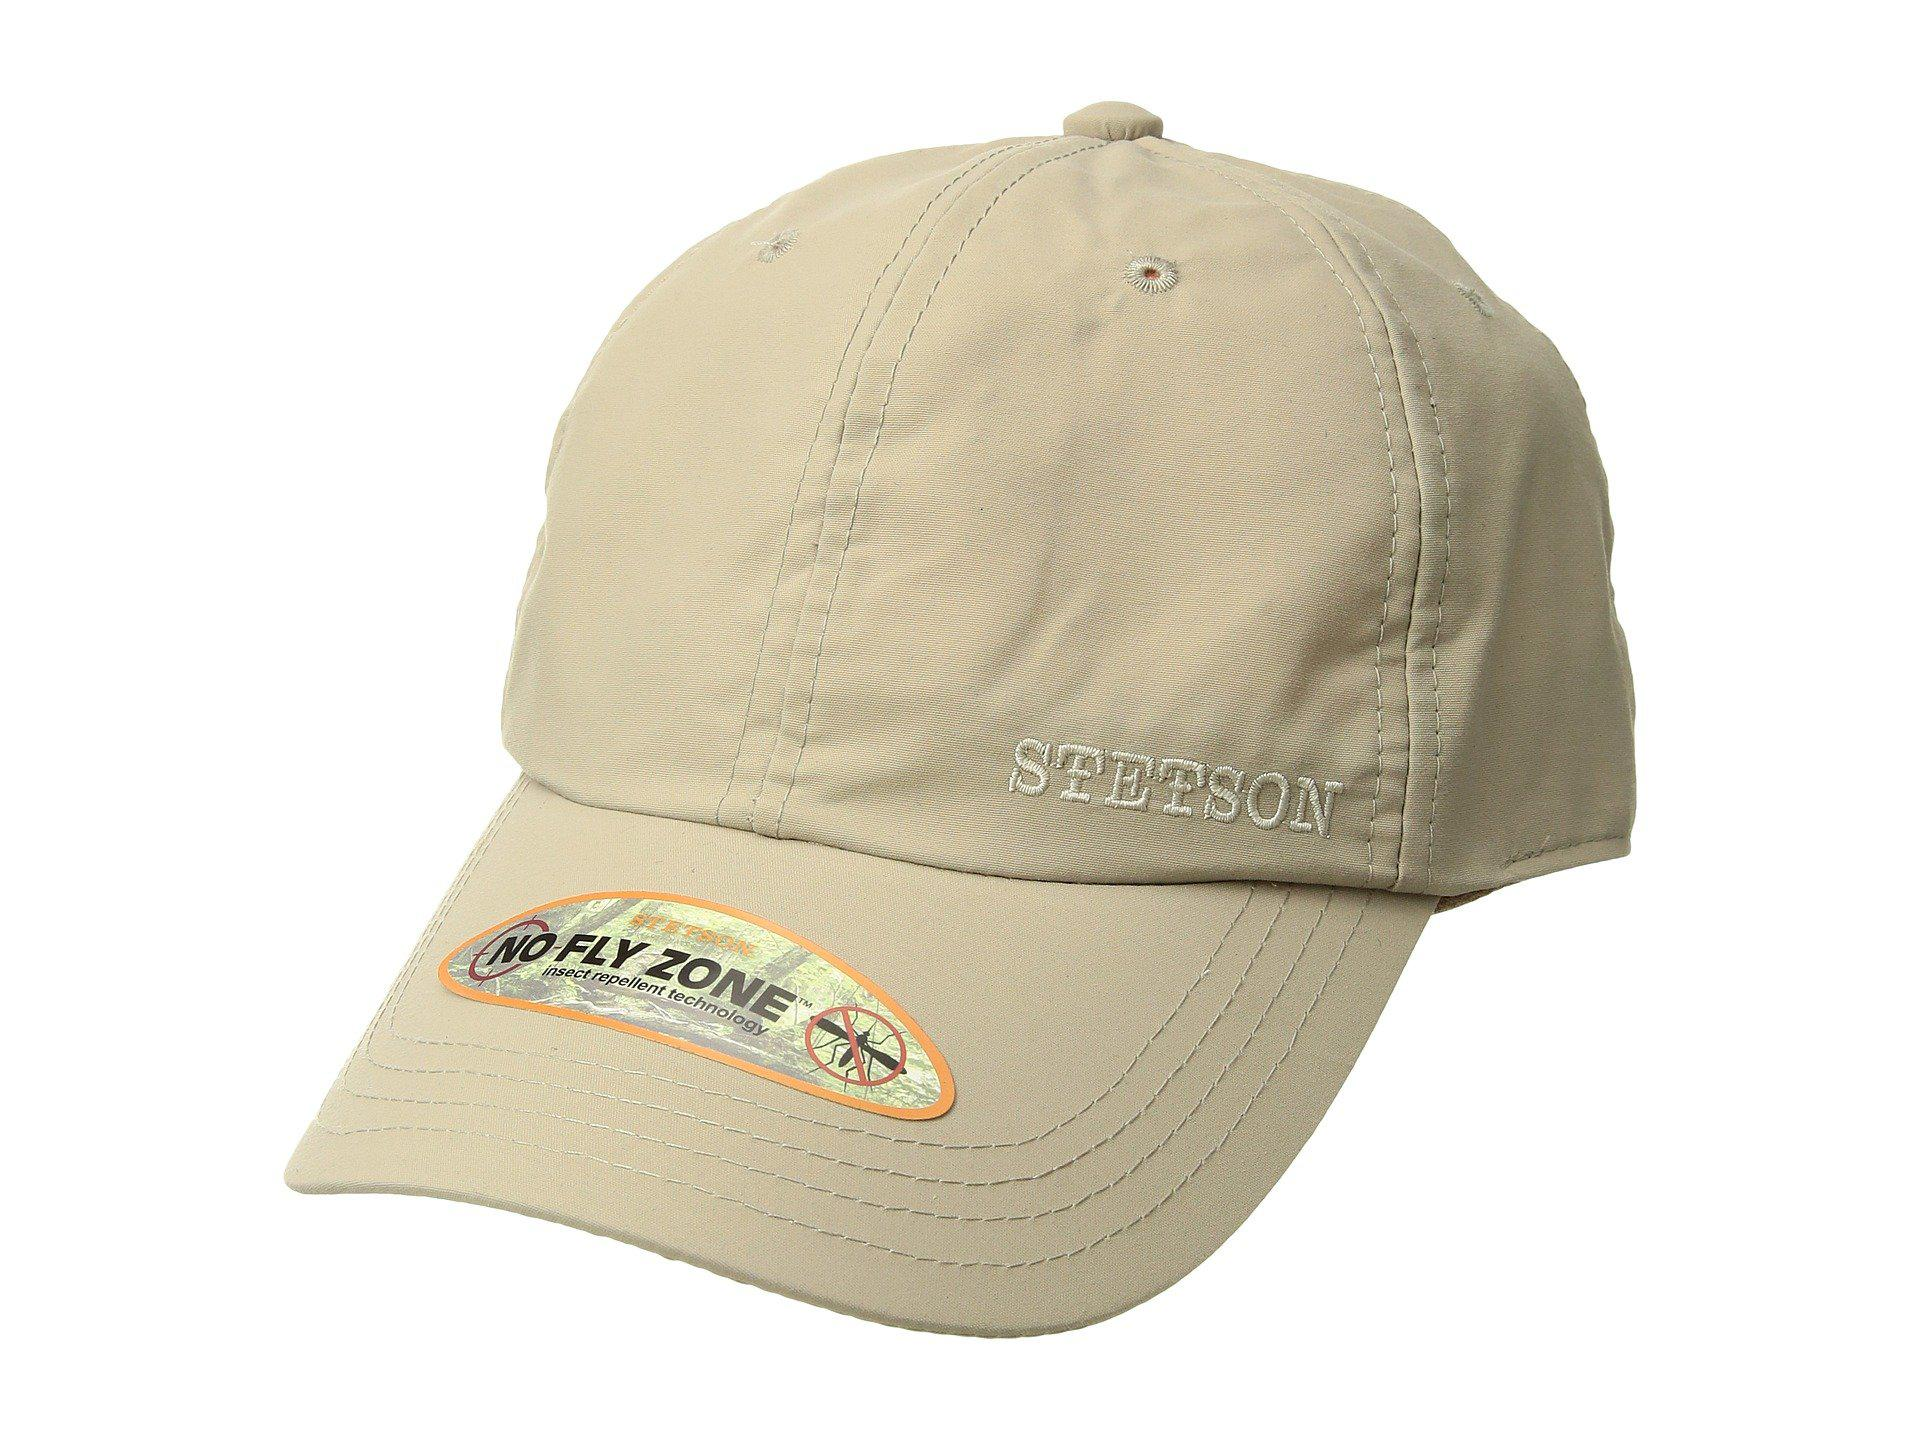 872b6031672 Lyst - Stetson No Fly Zone Baseball Cap (khaki) Baseball Caps in ...